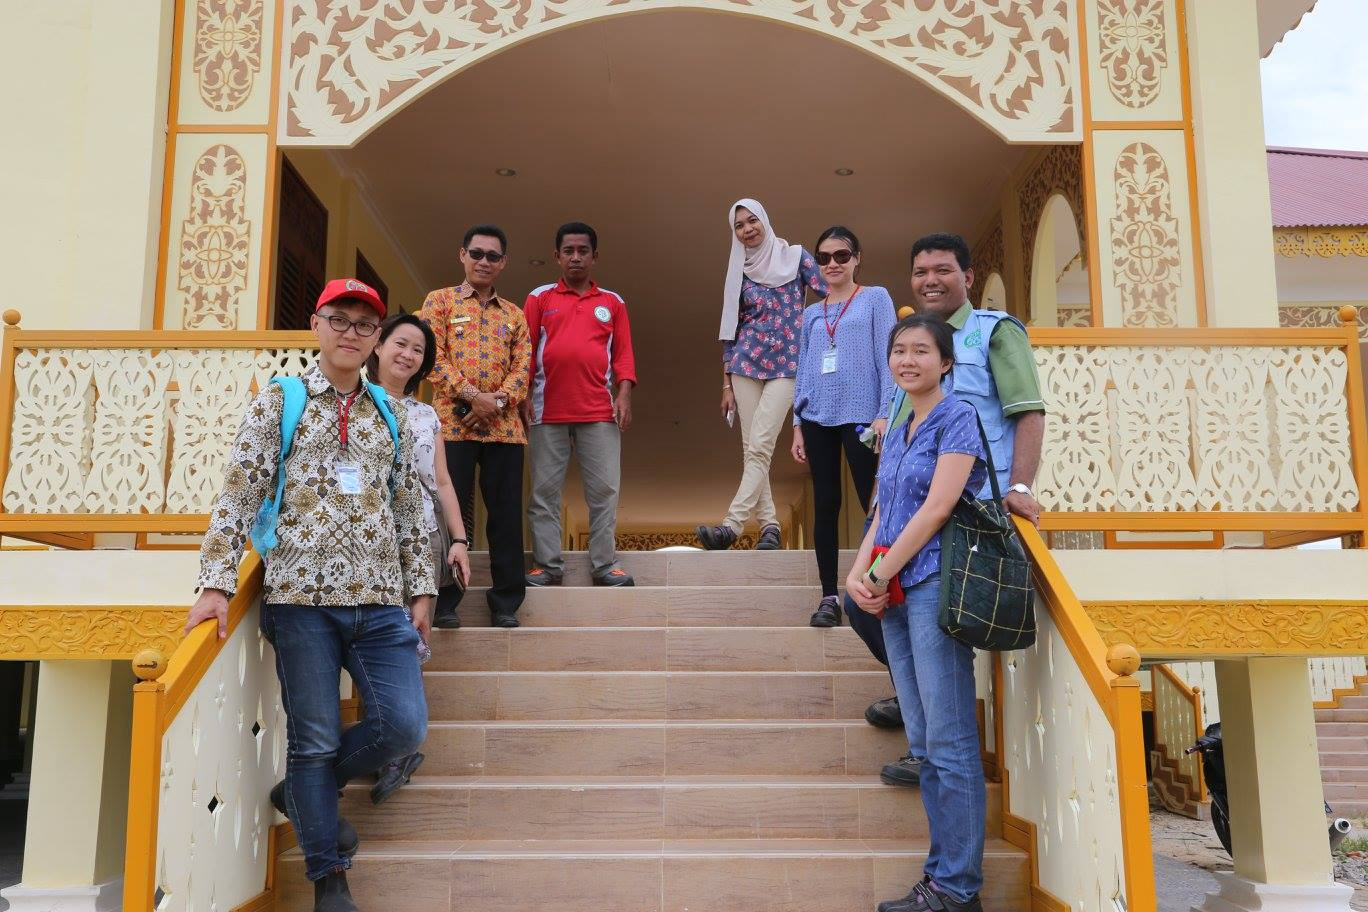 Apart from the mill, SIIA researchers, APRIL staff and the village head also visited a historic Istana nearby, which was recently rebuilt.